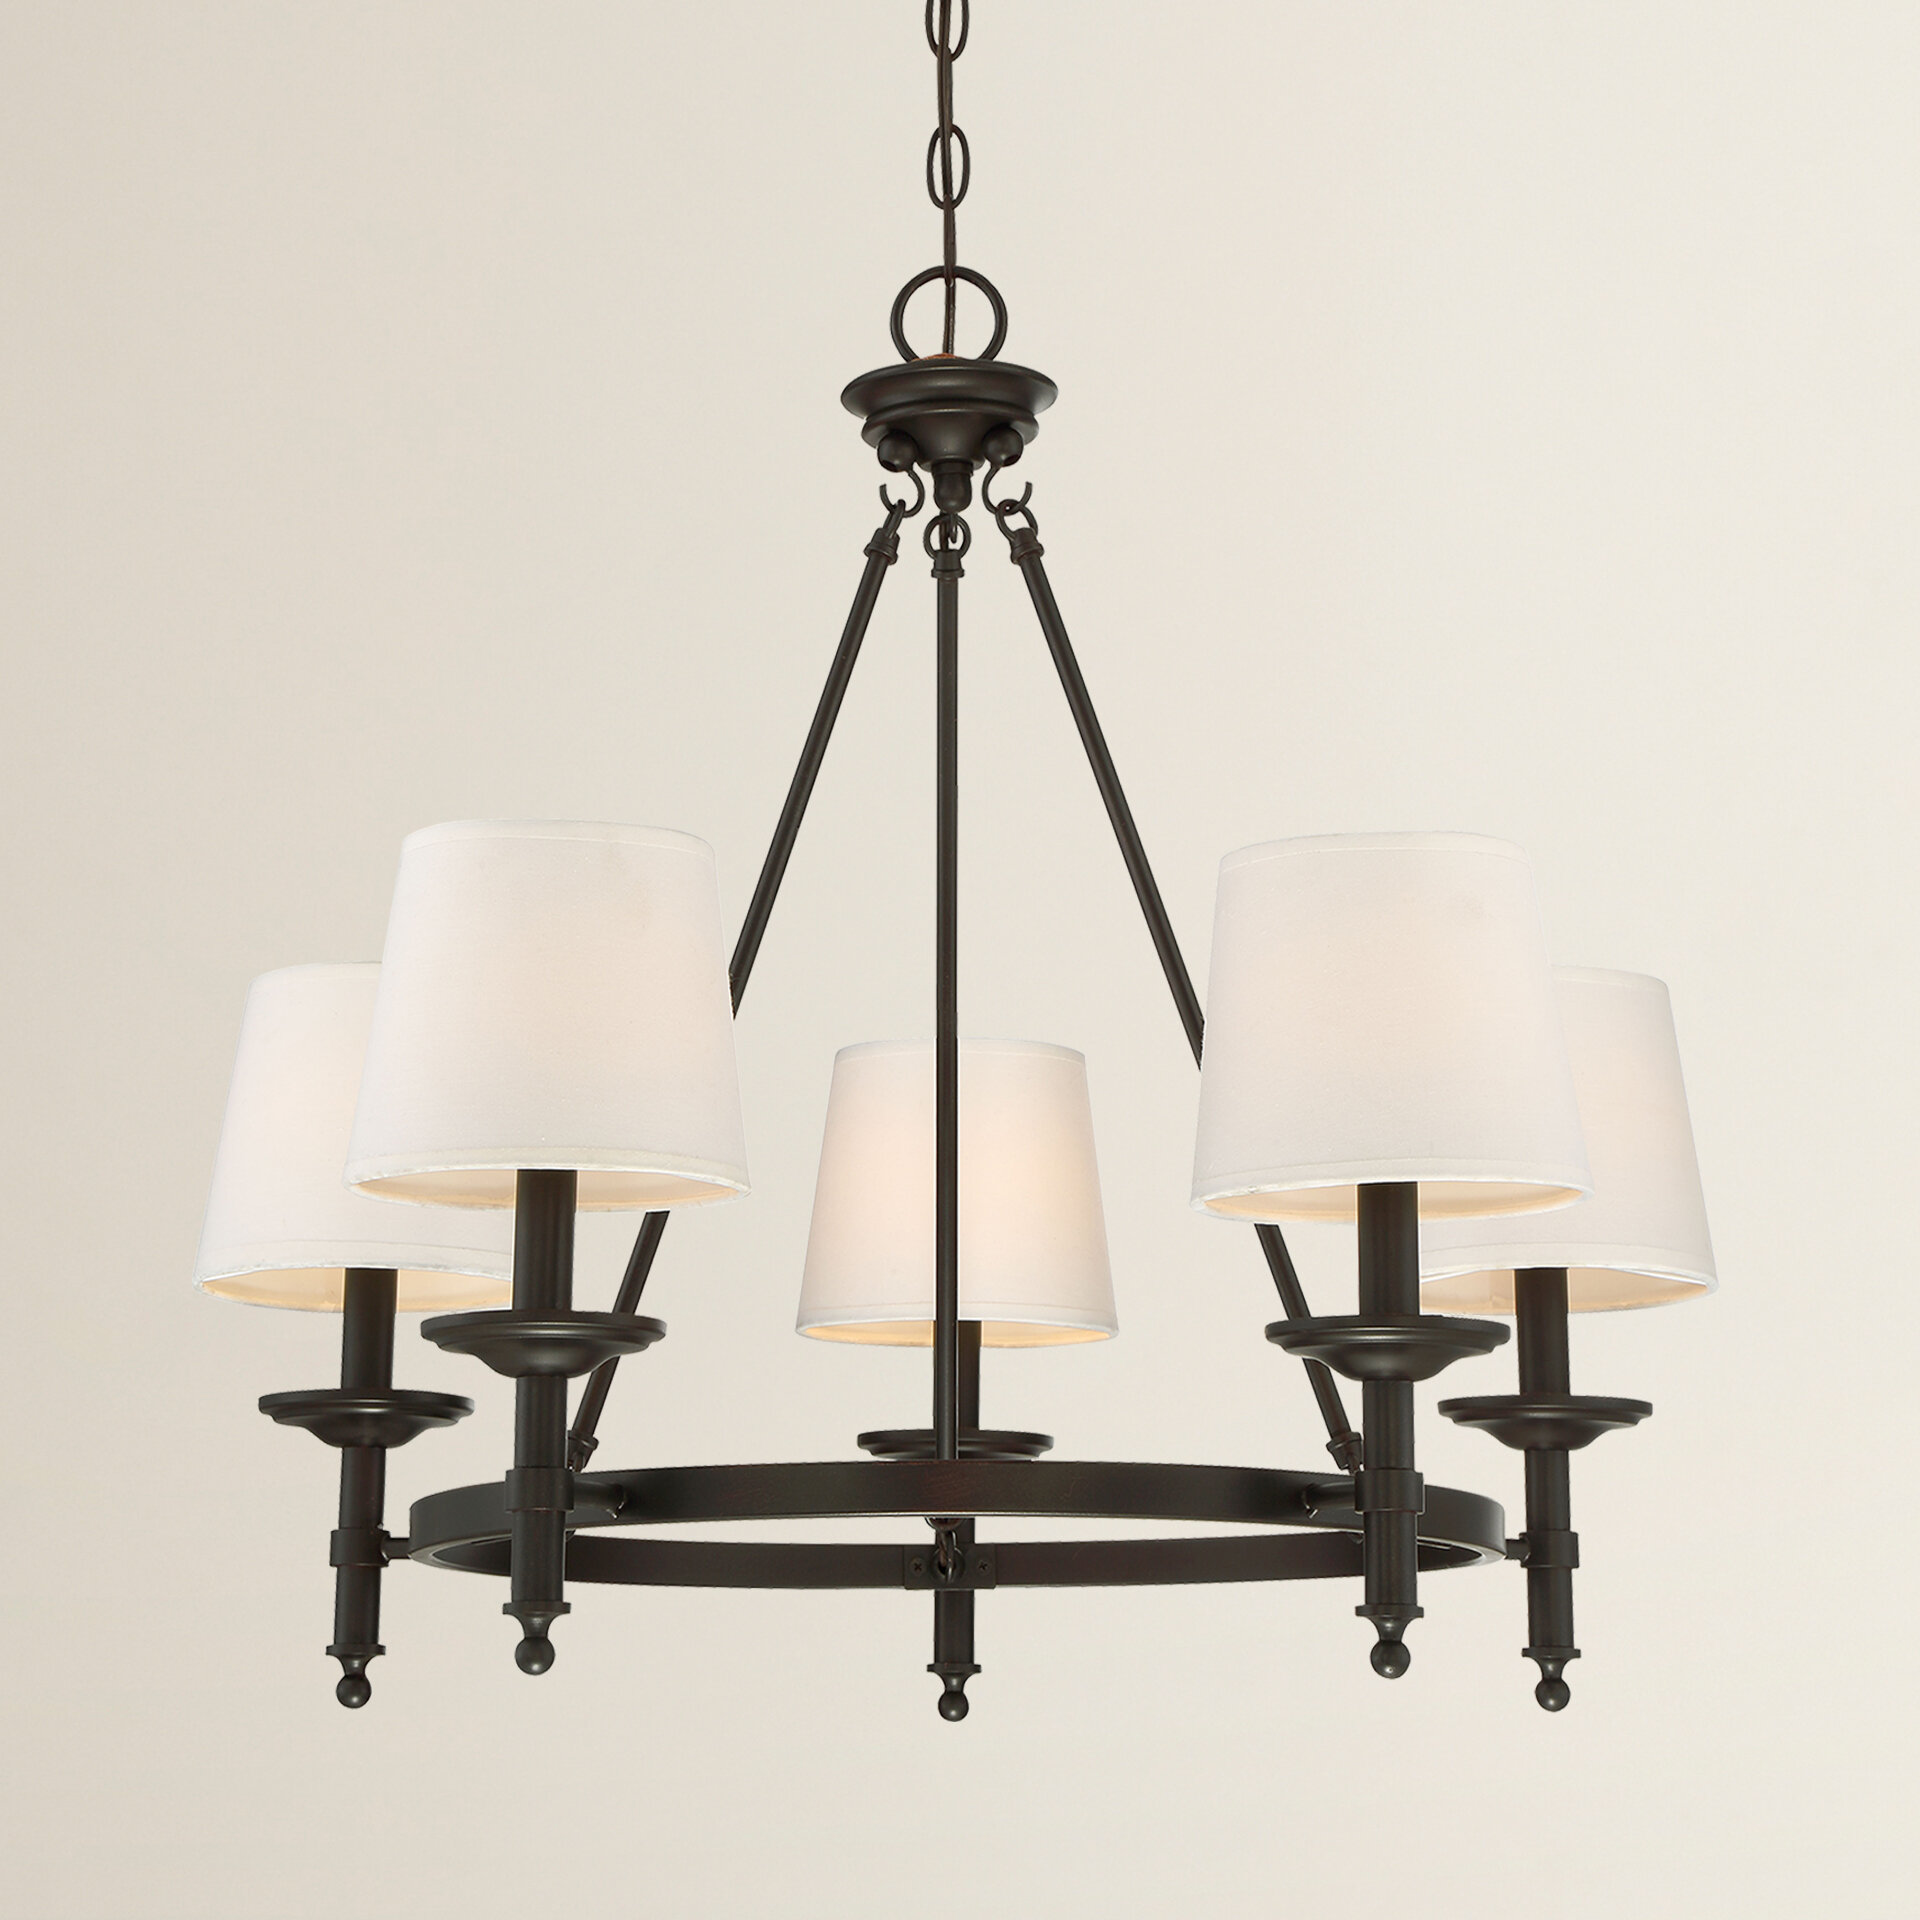 images small by vienna chandeliers jonathan image alt lighting adler sm br brass chand category chandelier modern